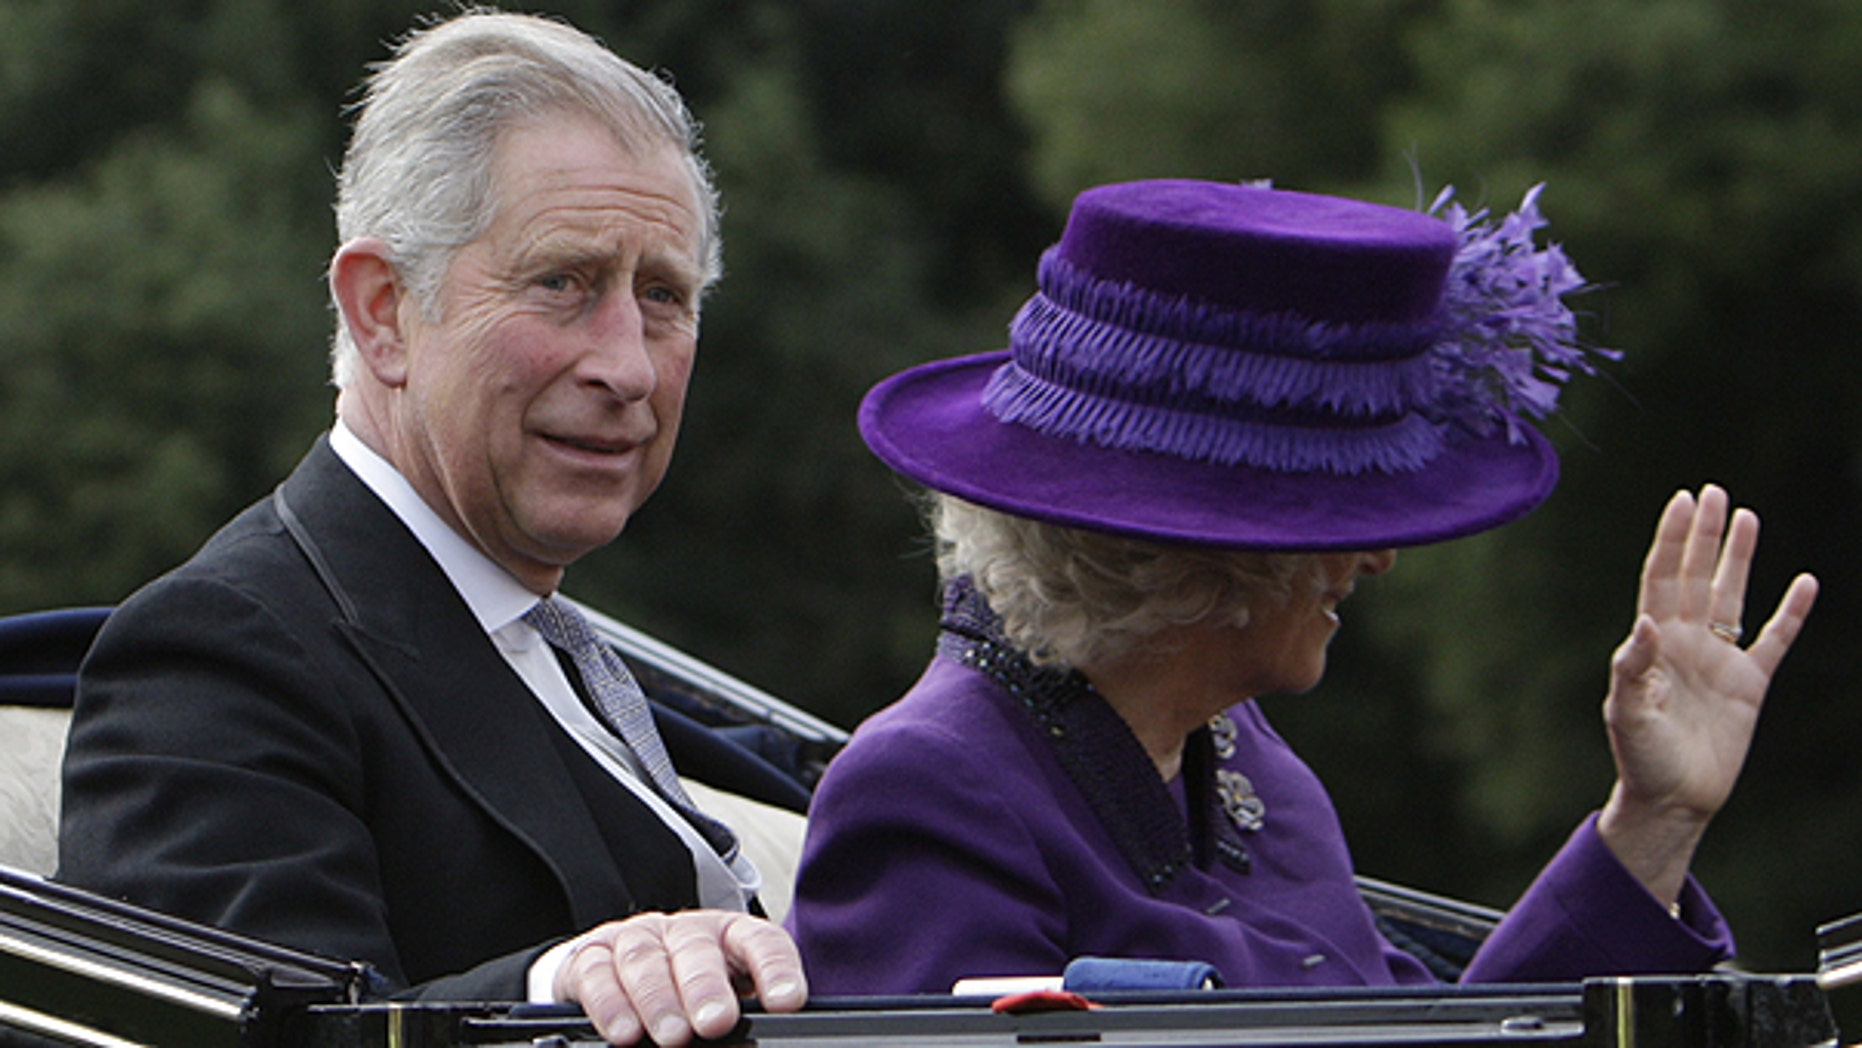 In this Oct. 27, 2009 file photo, Britain's Prince Charles, left, and his wife Camilla, Duchess of Cornwall are seen in a carriage during a state procession with Britain's Queen Elizabeth II and visiting Indian President Pratibha Patil at Windsor Castle, England.